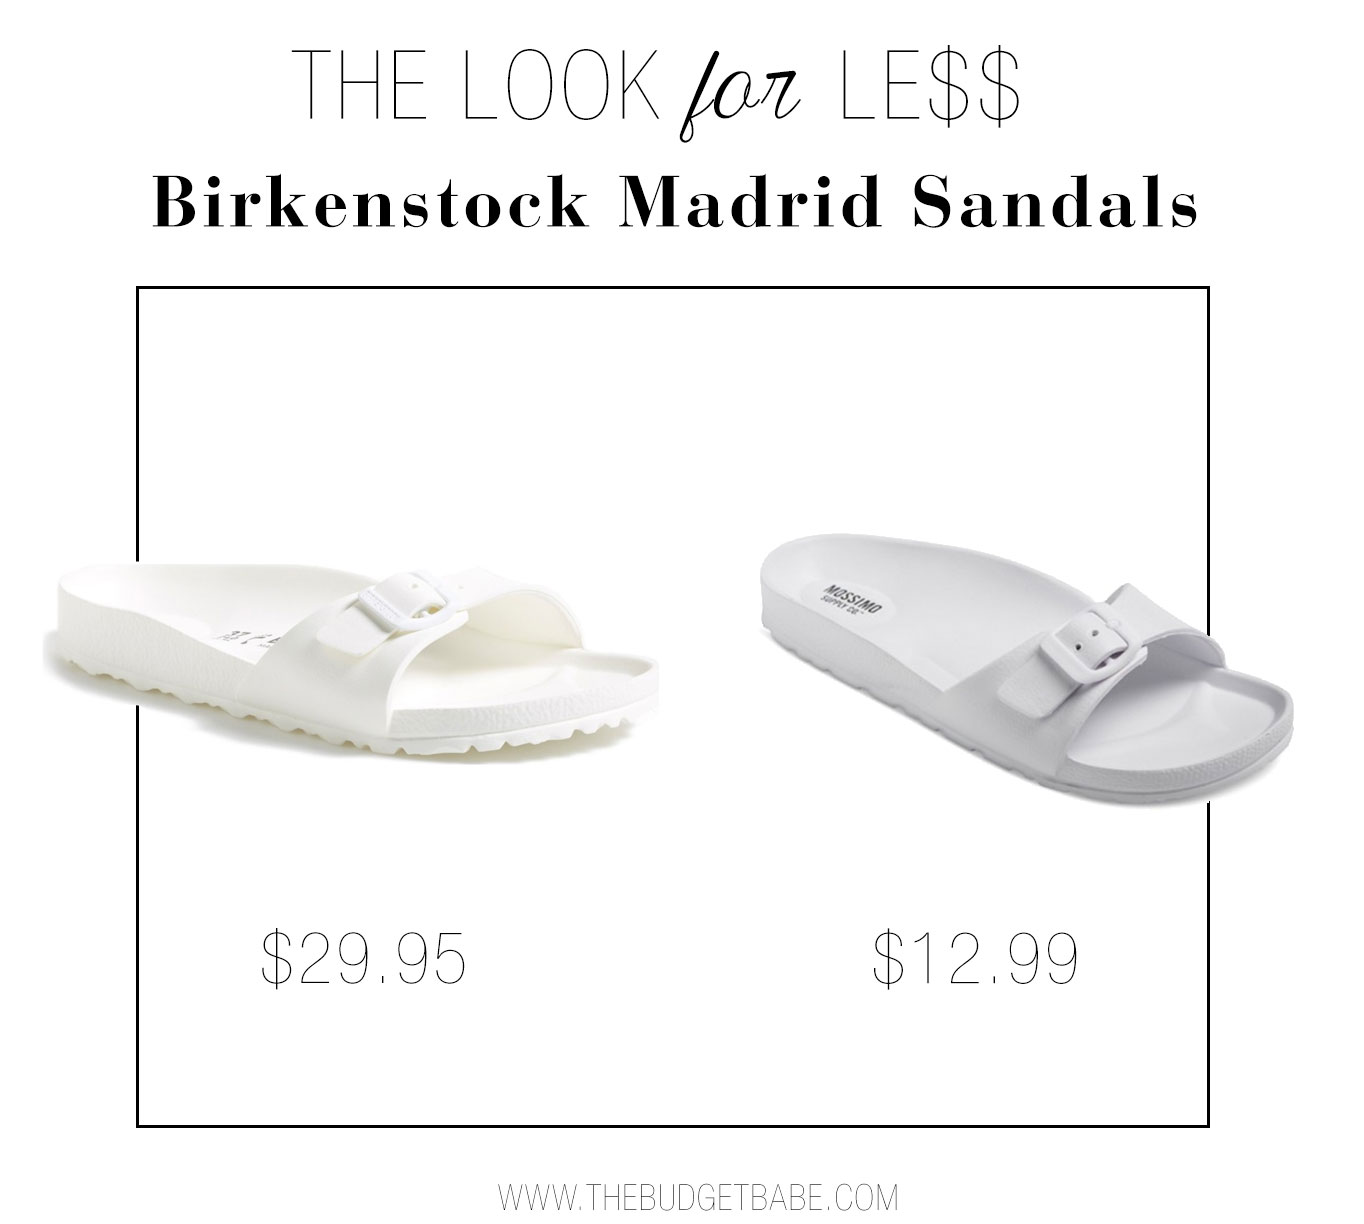 Birkenstock Madrid sandals get knocked off by Mossimo at Target.